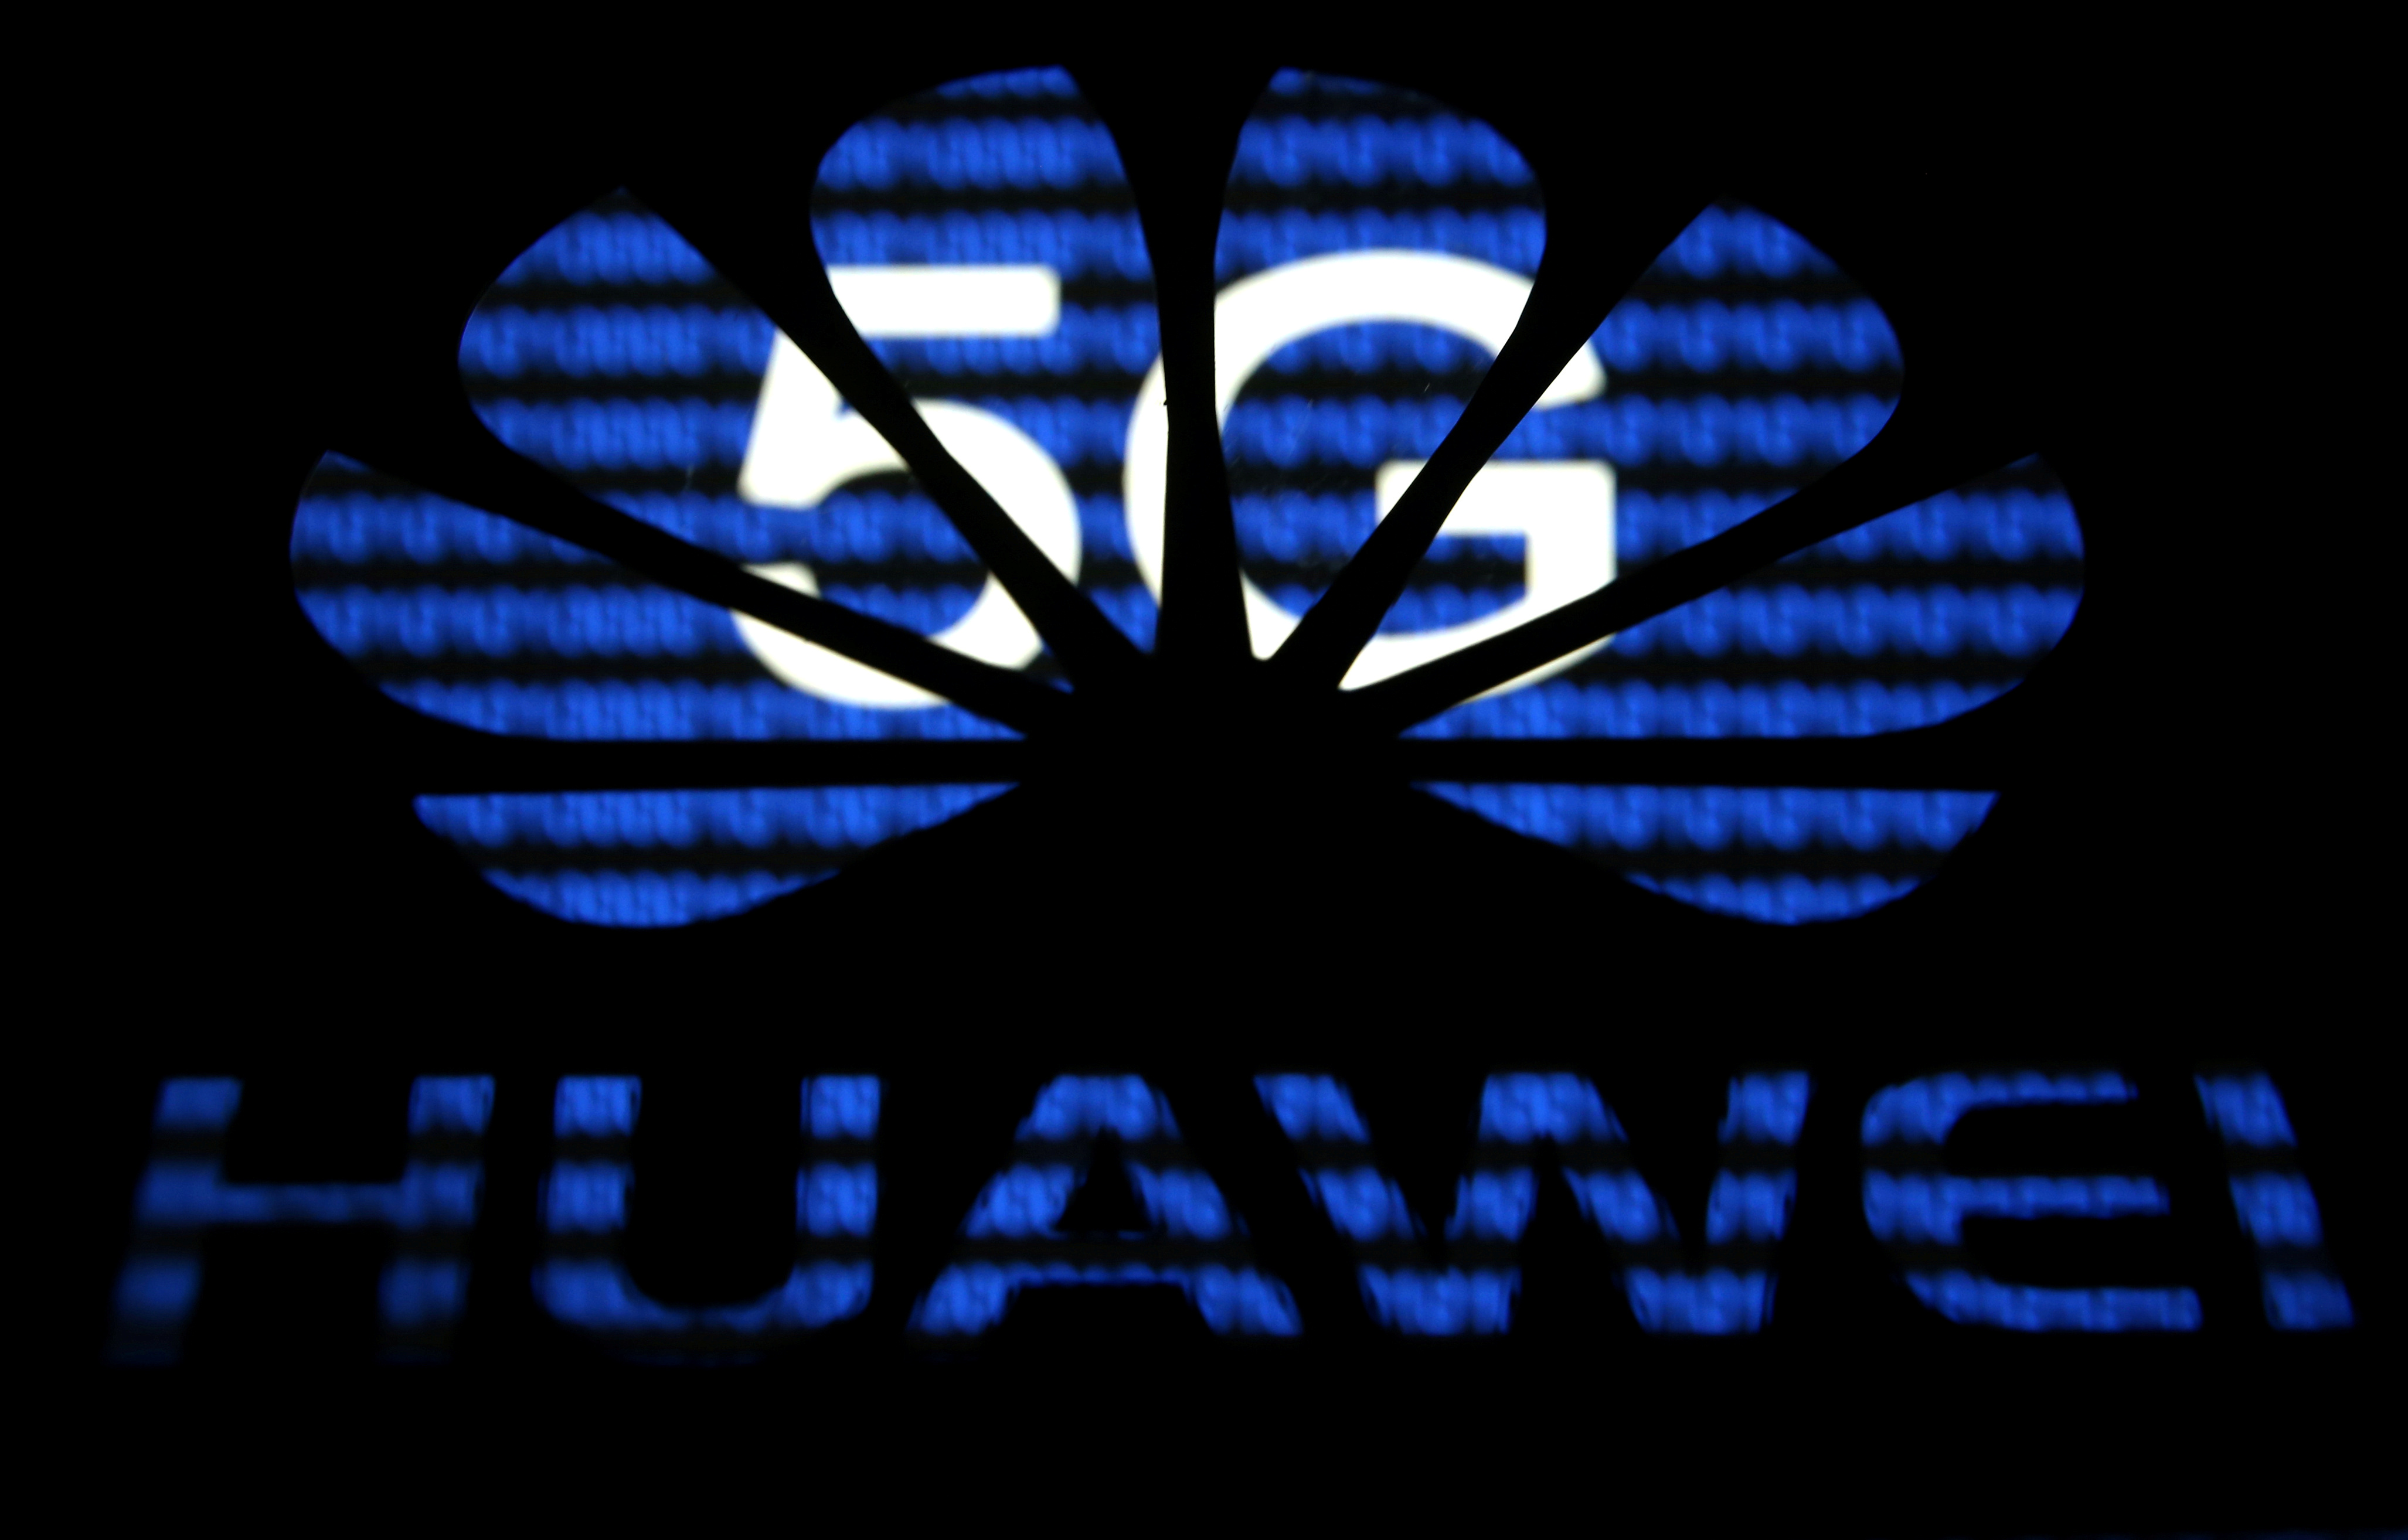 It's complicated, says Britain's MI6 spymaster on Huawei 5G issue